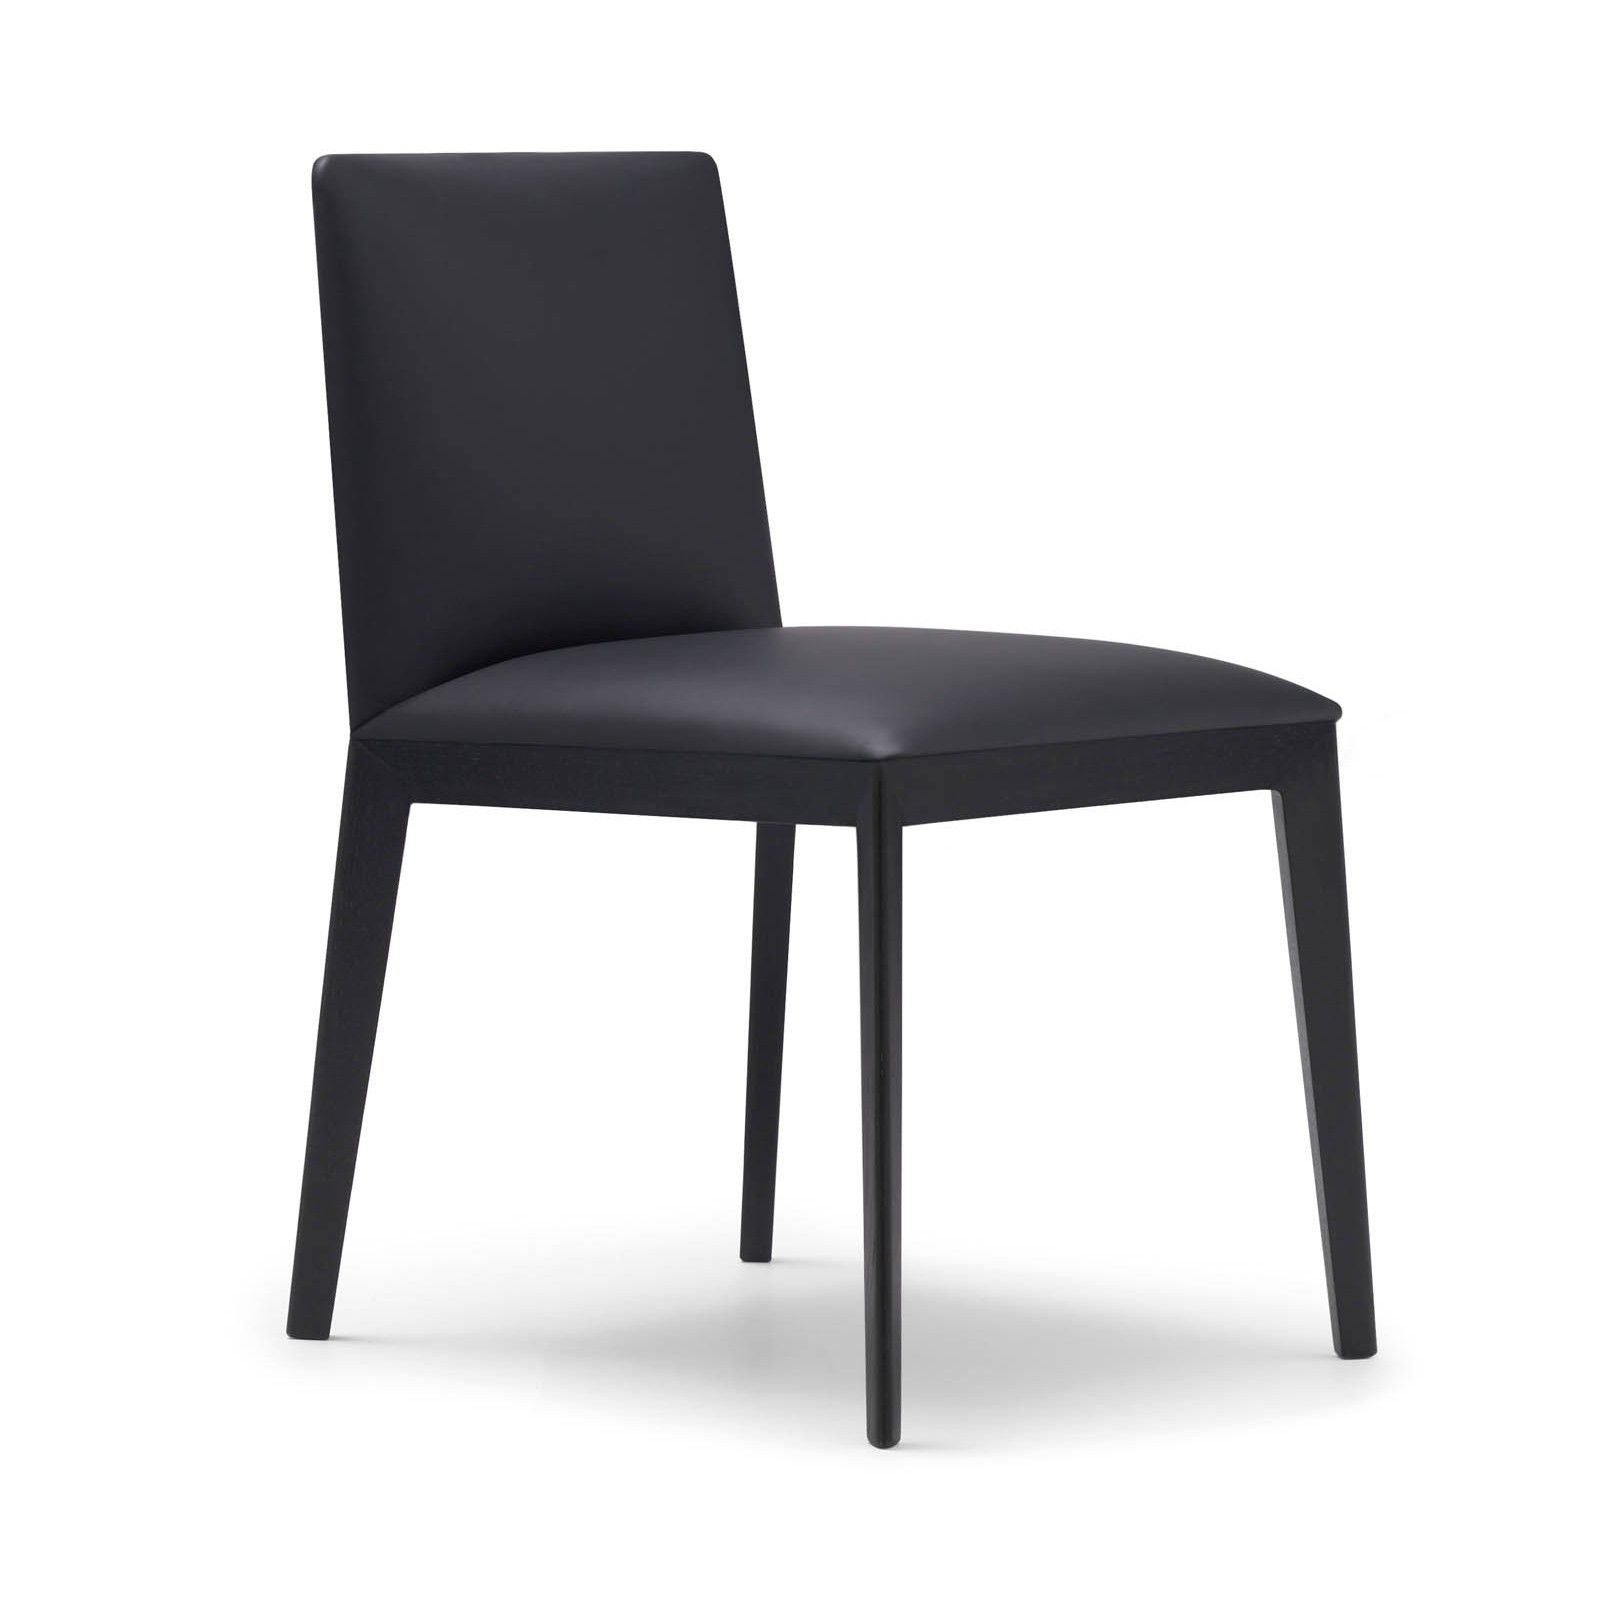 Sydney Central Furniture Upholstered Dining Chairs Sydney Dining Room Ideas